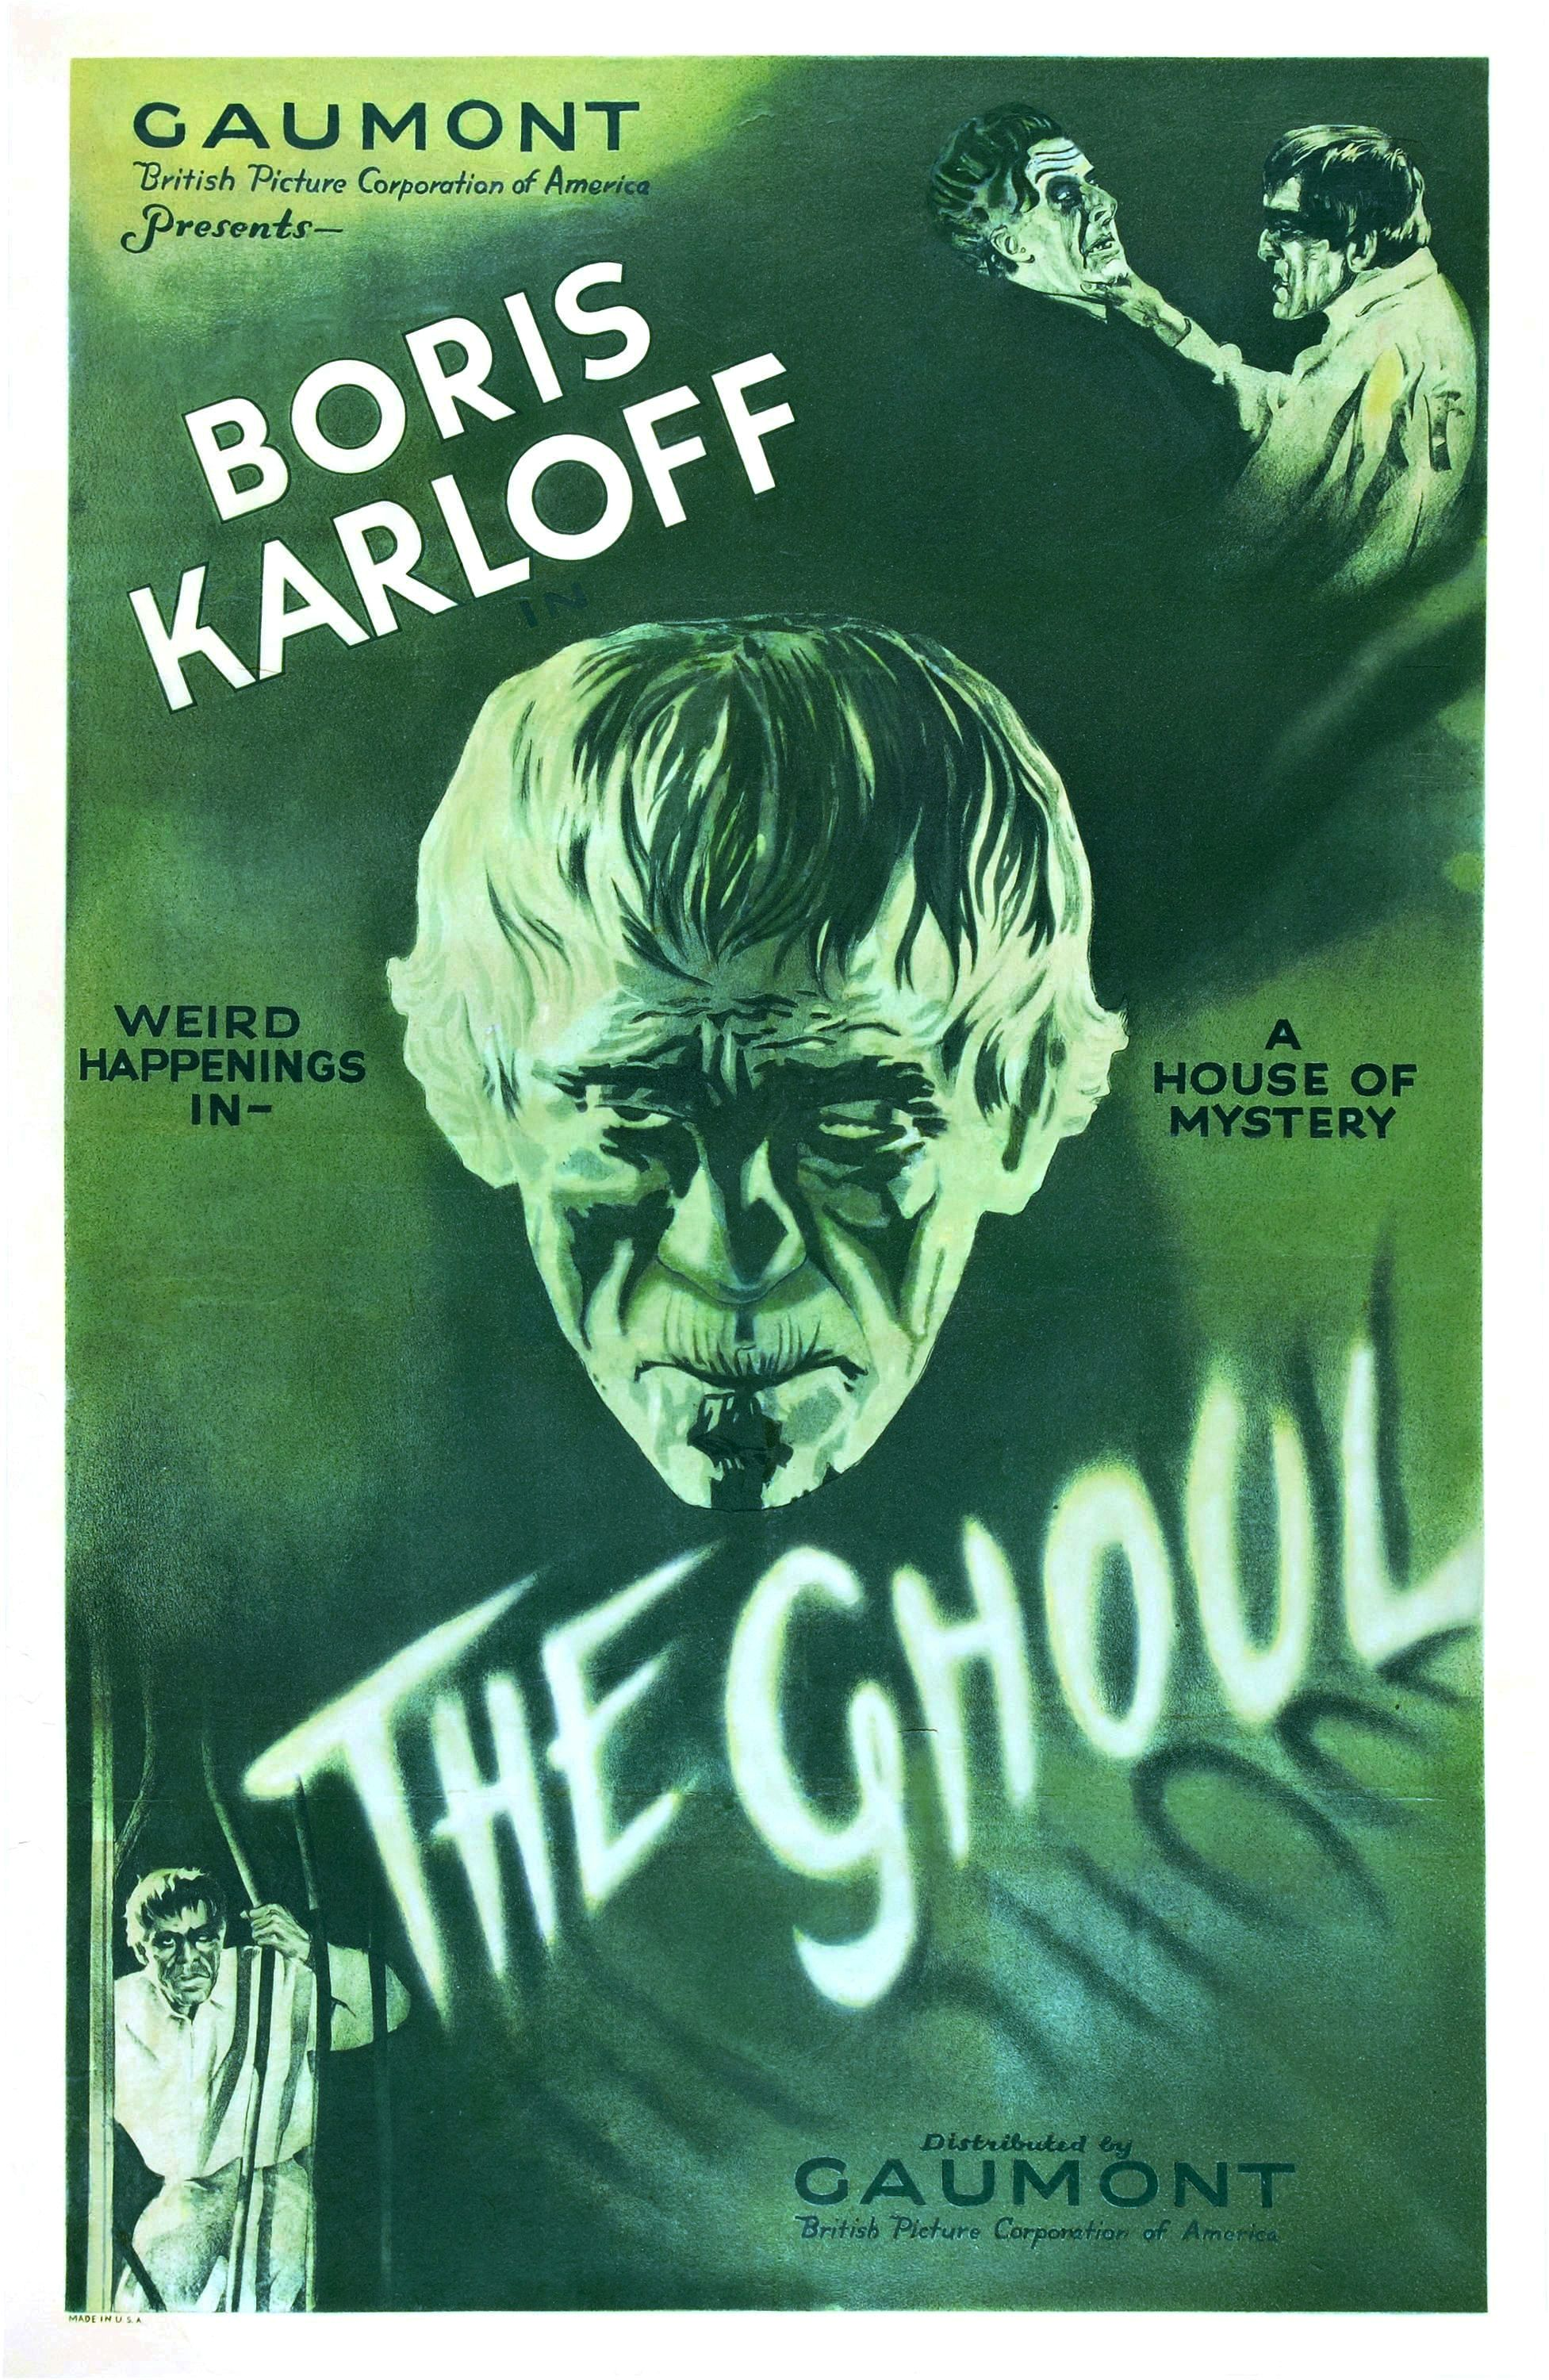 the-ghoul-1kite44the-ghoul-1the-ghoul-19the-ghoul-30the-ghoul-29the-ghoul-4